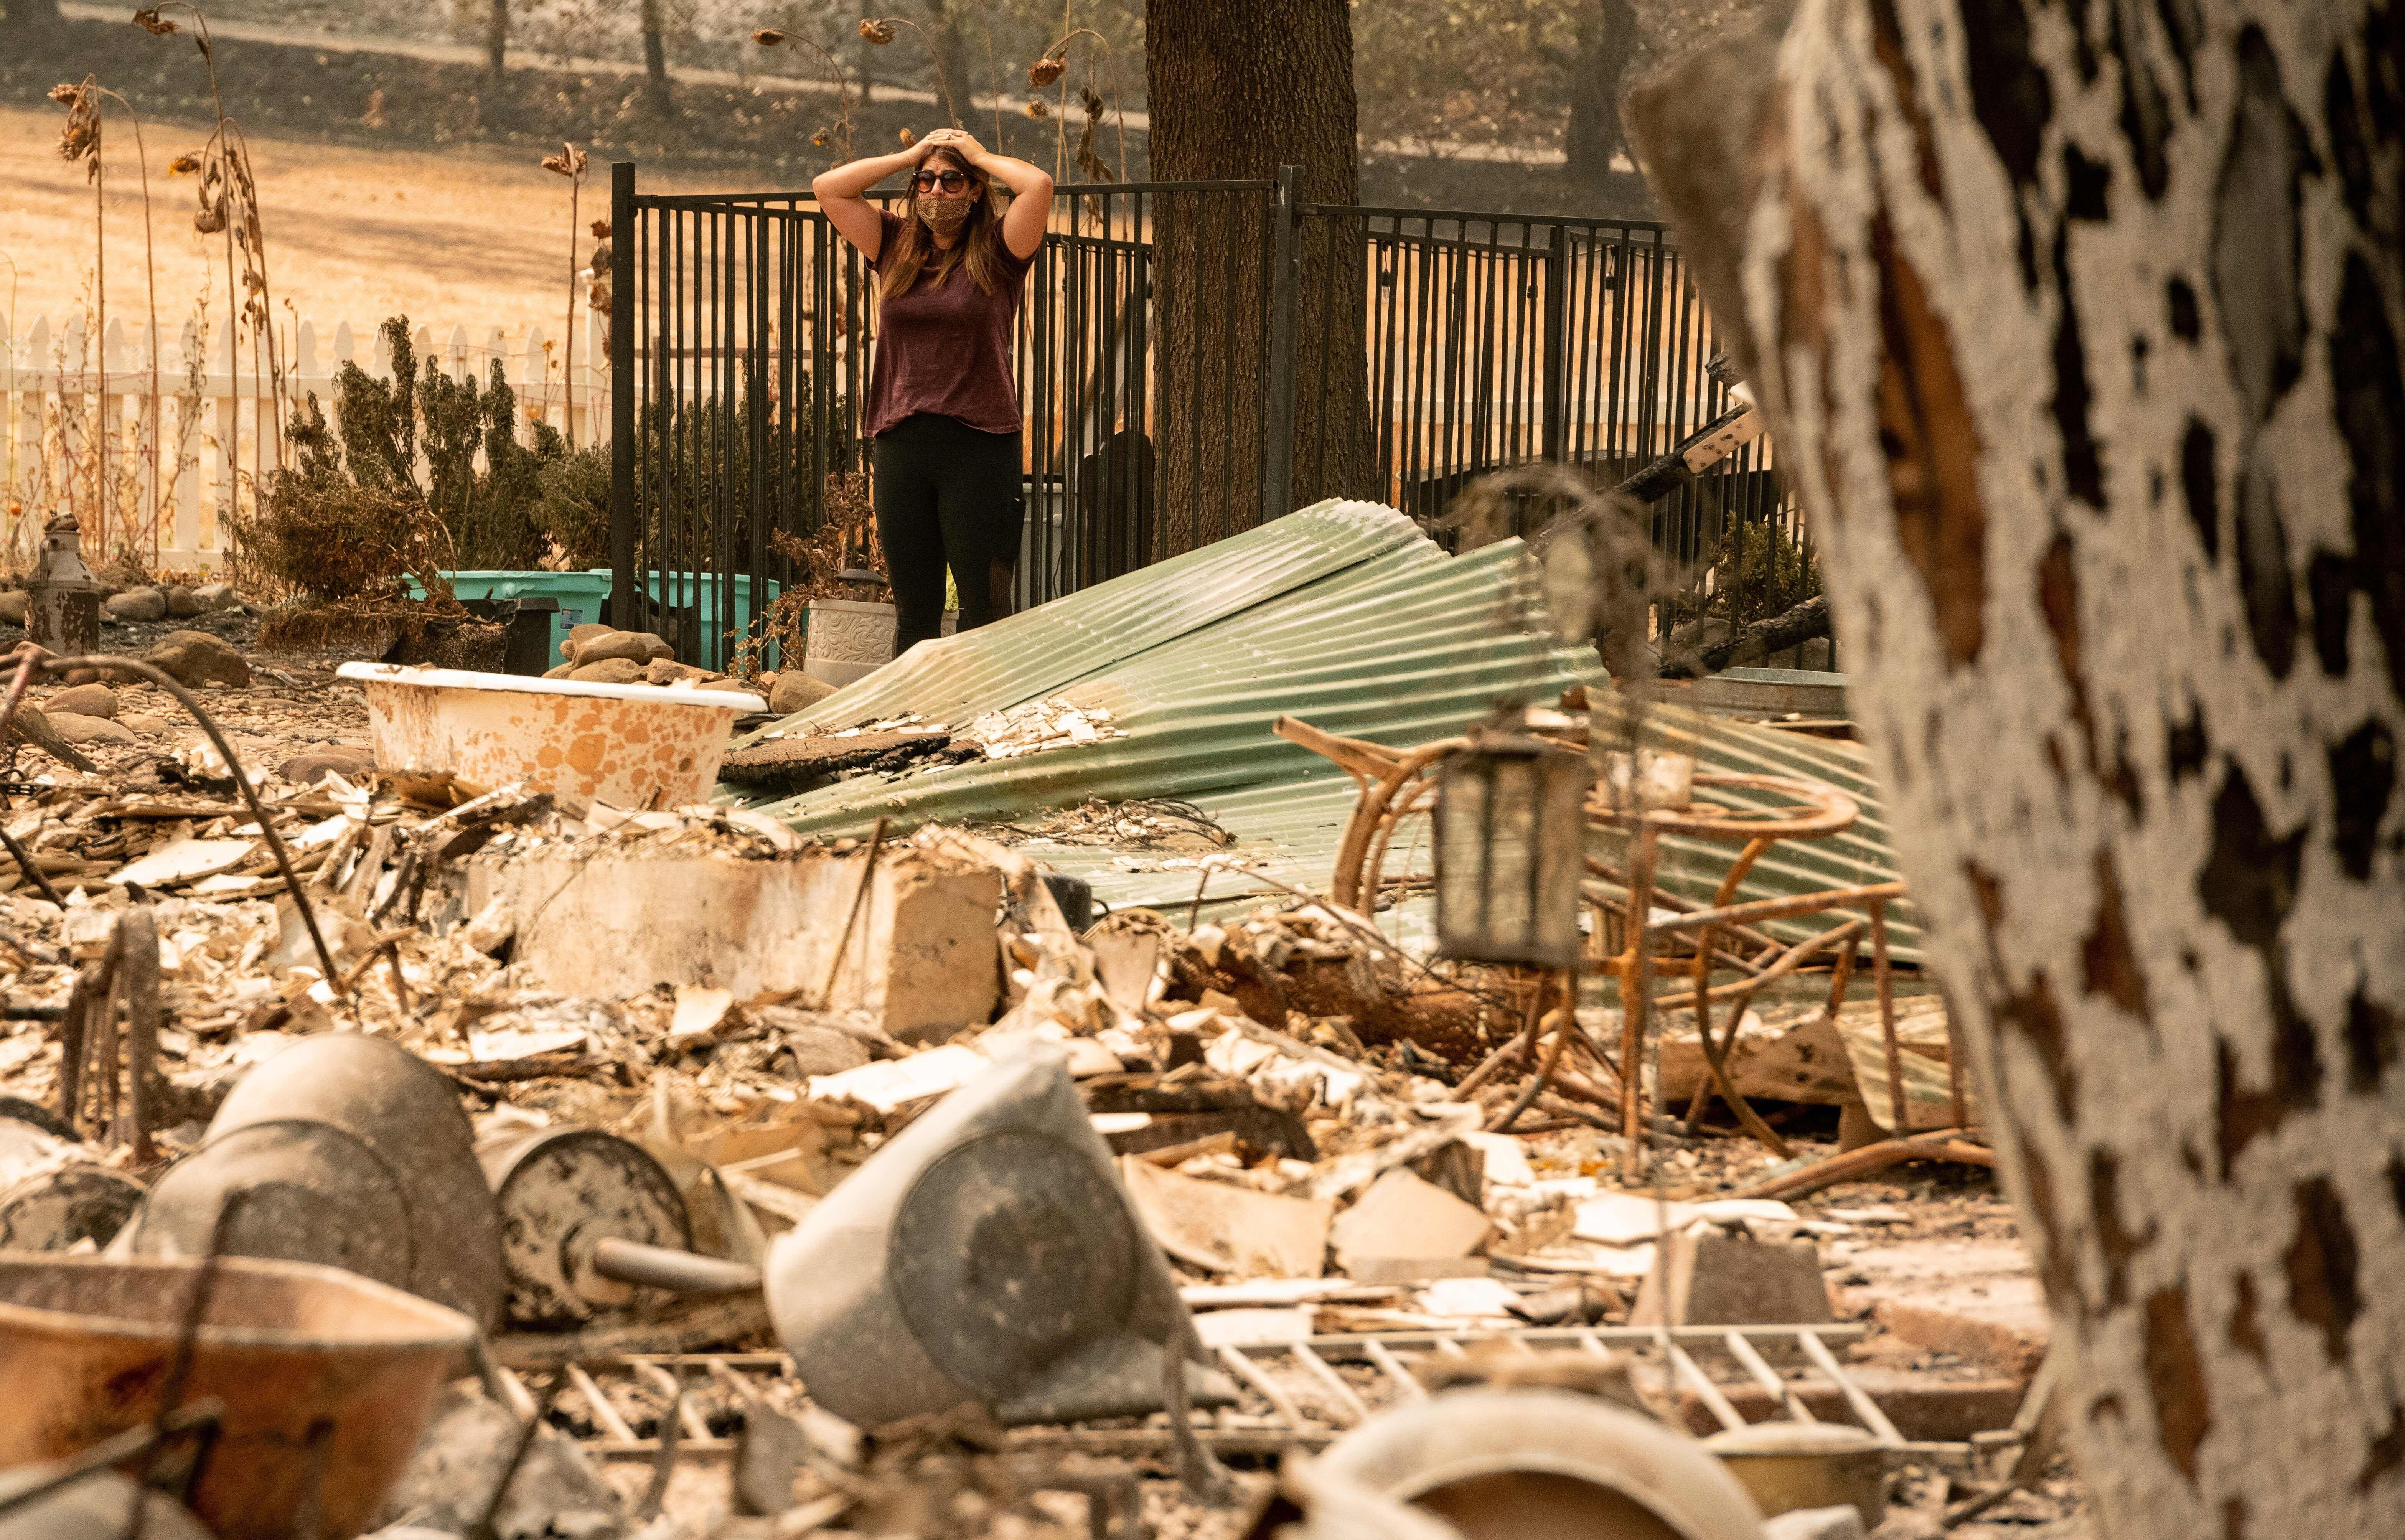 Alyssa Medina reacts to the charred remains of her family home, burned by the LNU Lightning Complex fire in Vacaville, Califo